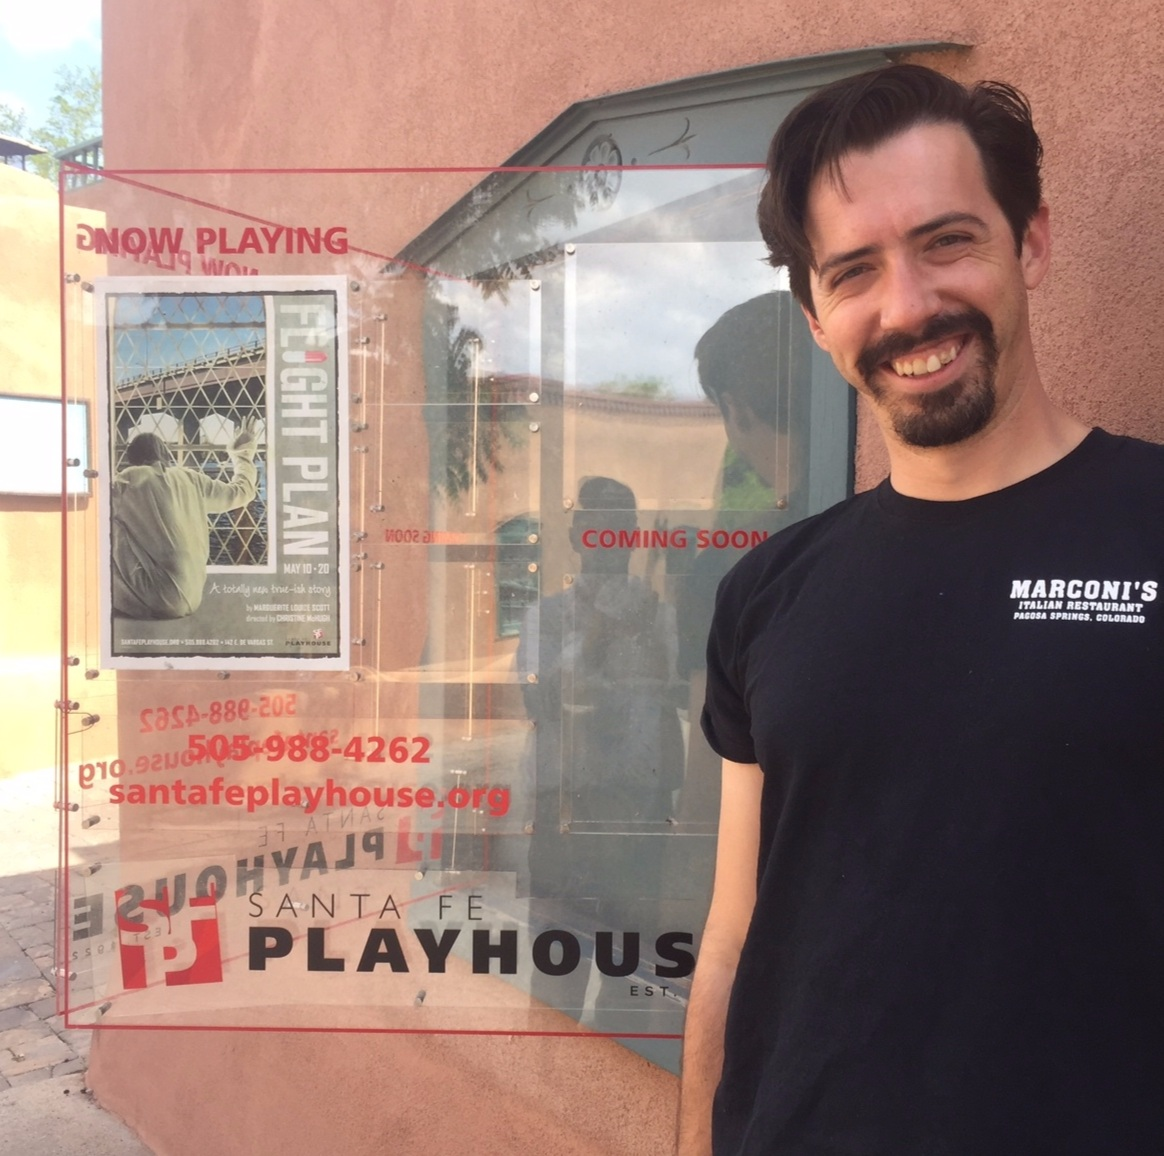 Marquis Signage for the Santa Fe Playhouse - current, future, past shows and photographs can be placed in an interchangeable display.  Let us design a custom installation that will Dazzle your clientele.